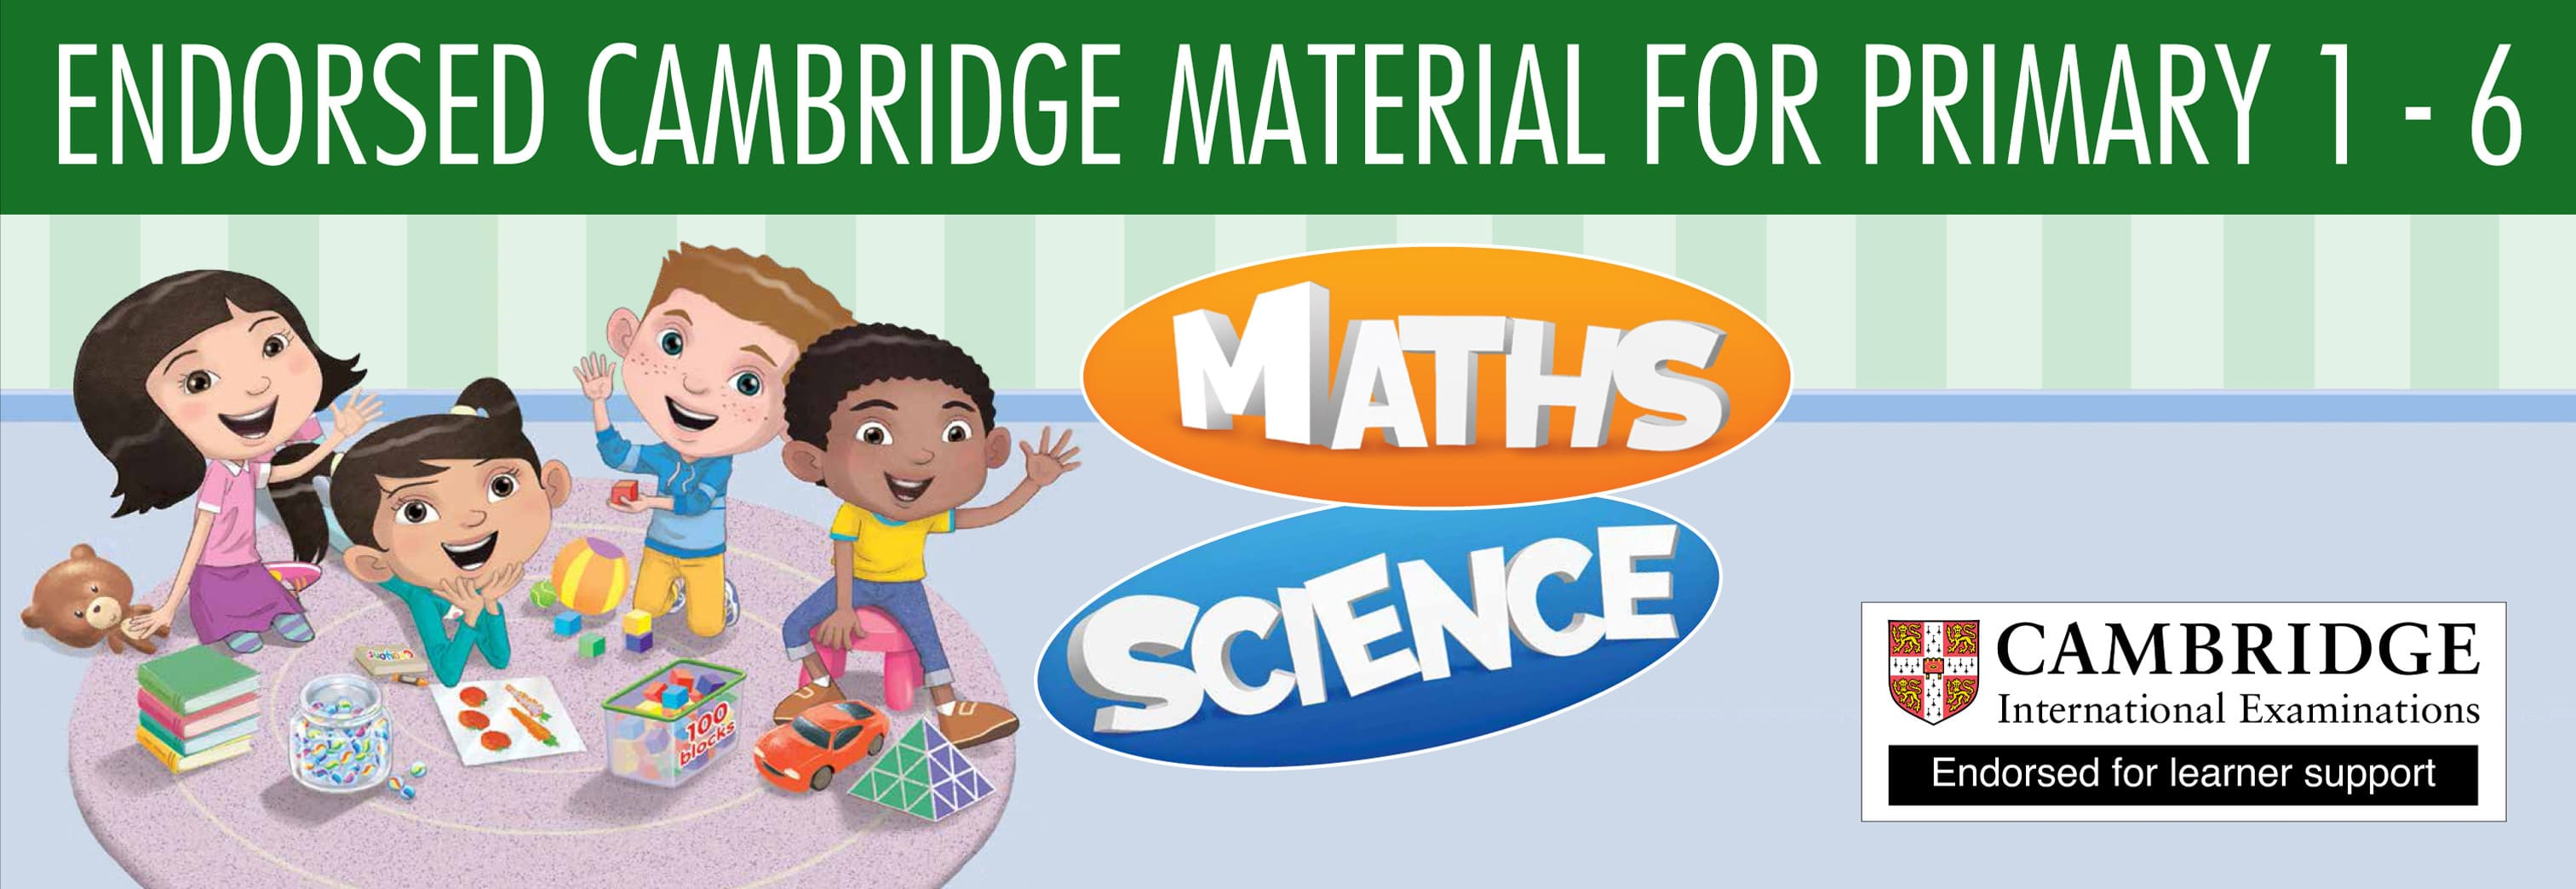 Banner for Marshall Cavendish Cambridge Primary Maths & Science homeschool curriculum provider.